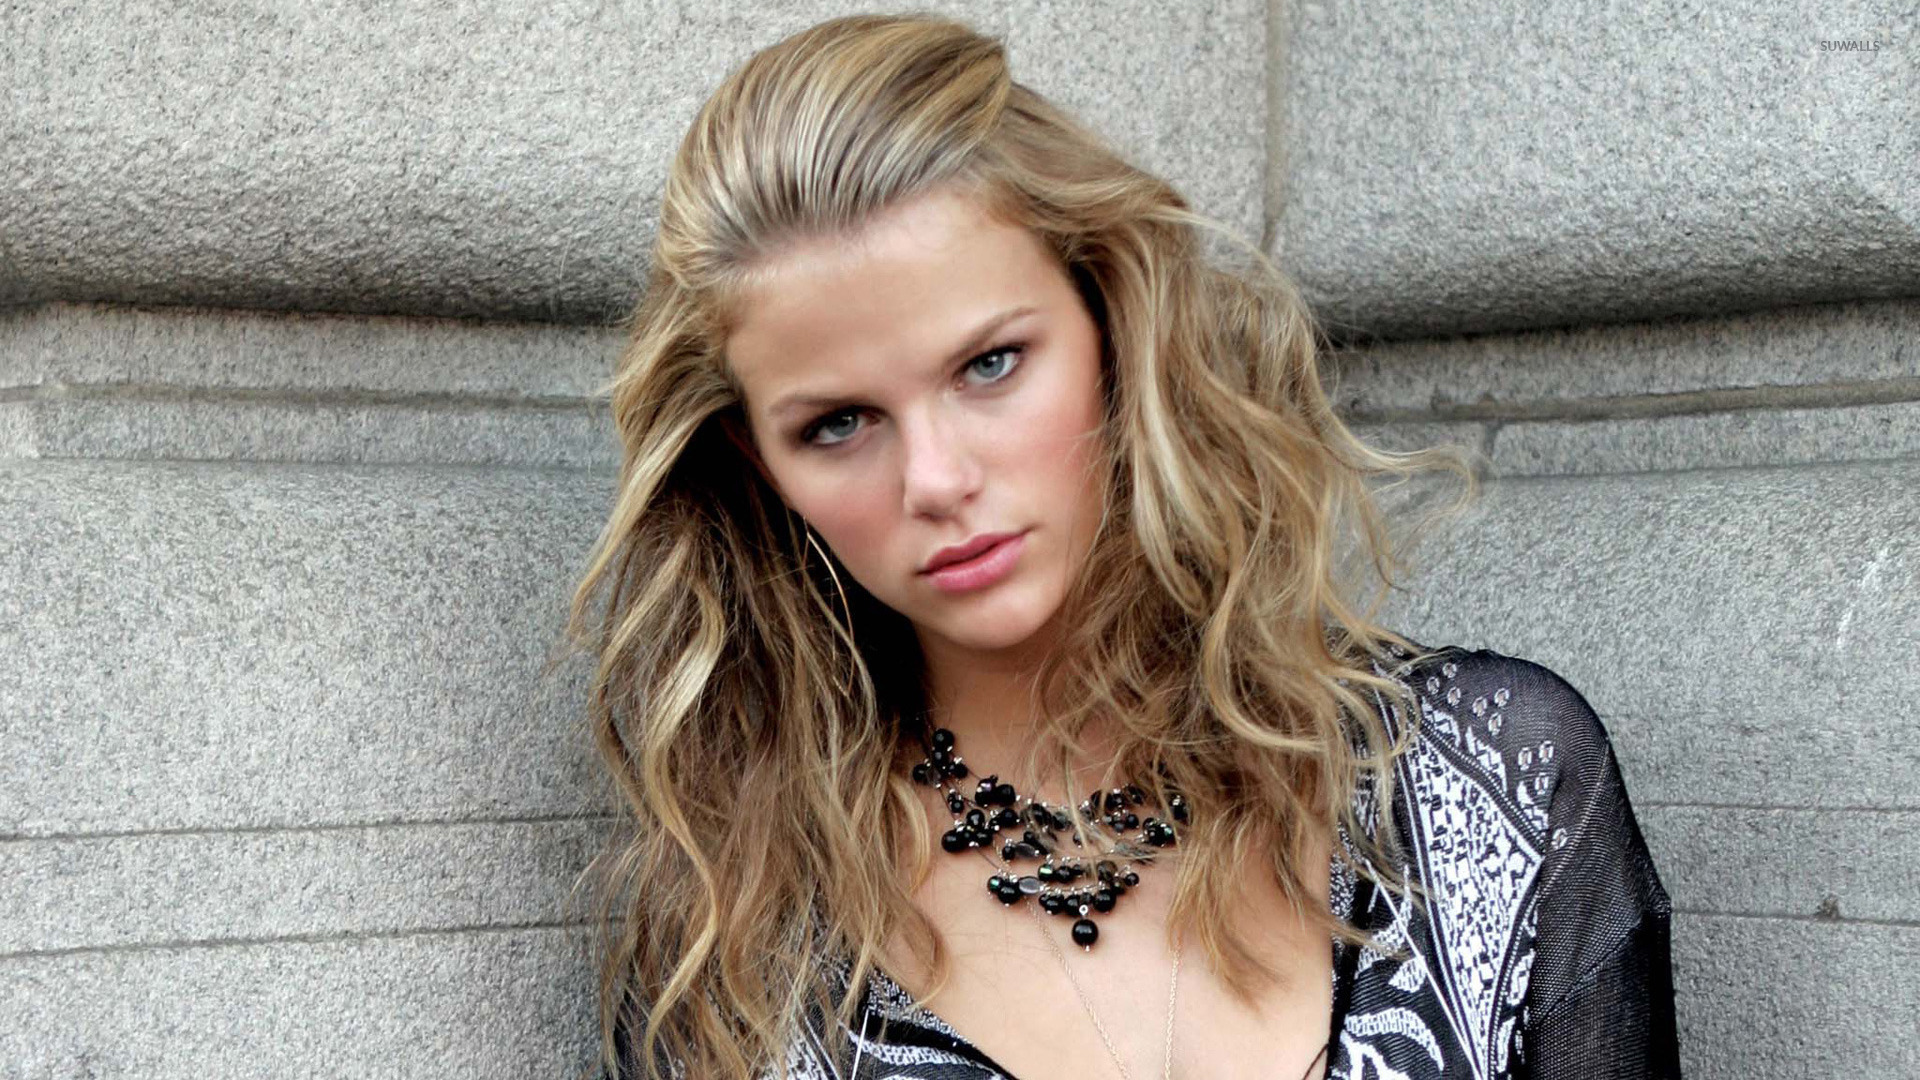 And brooklyn decker, young dominate girls sex thumbs